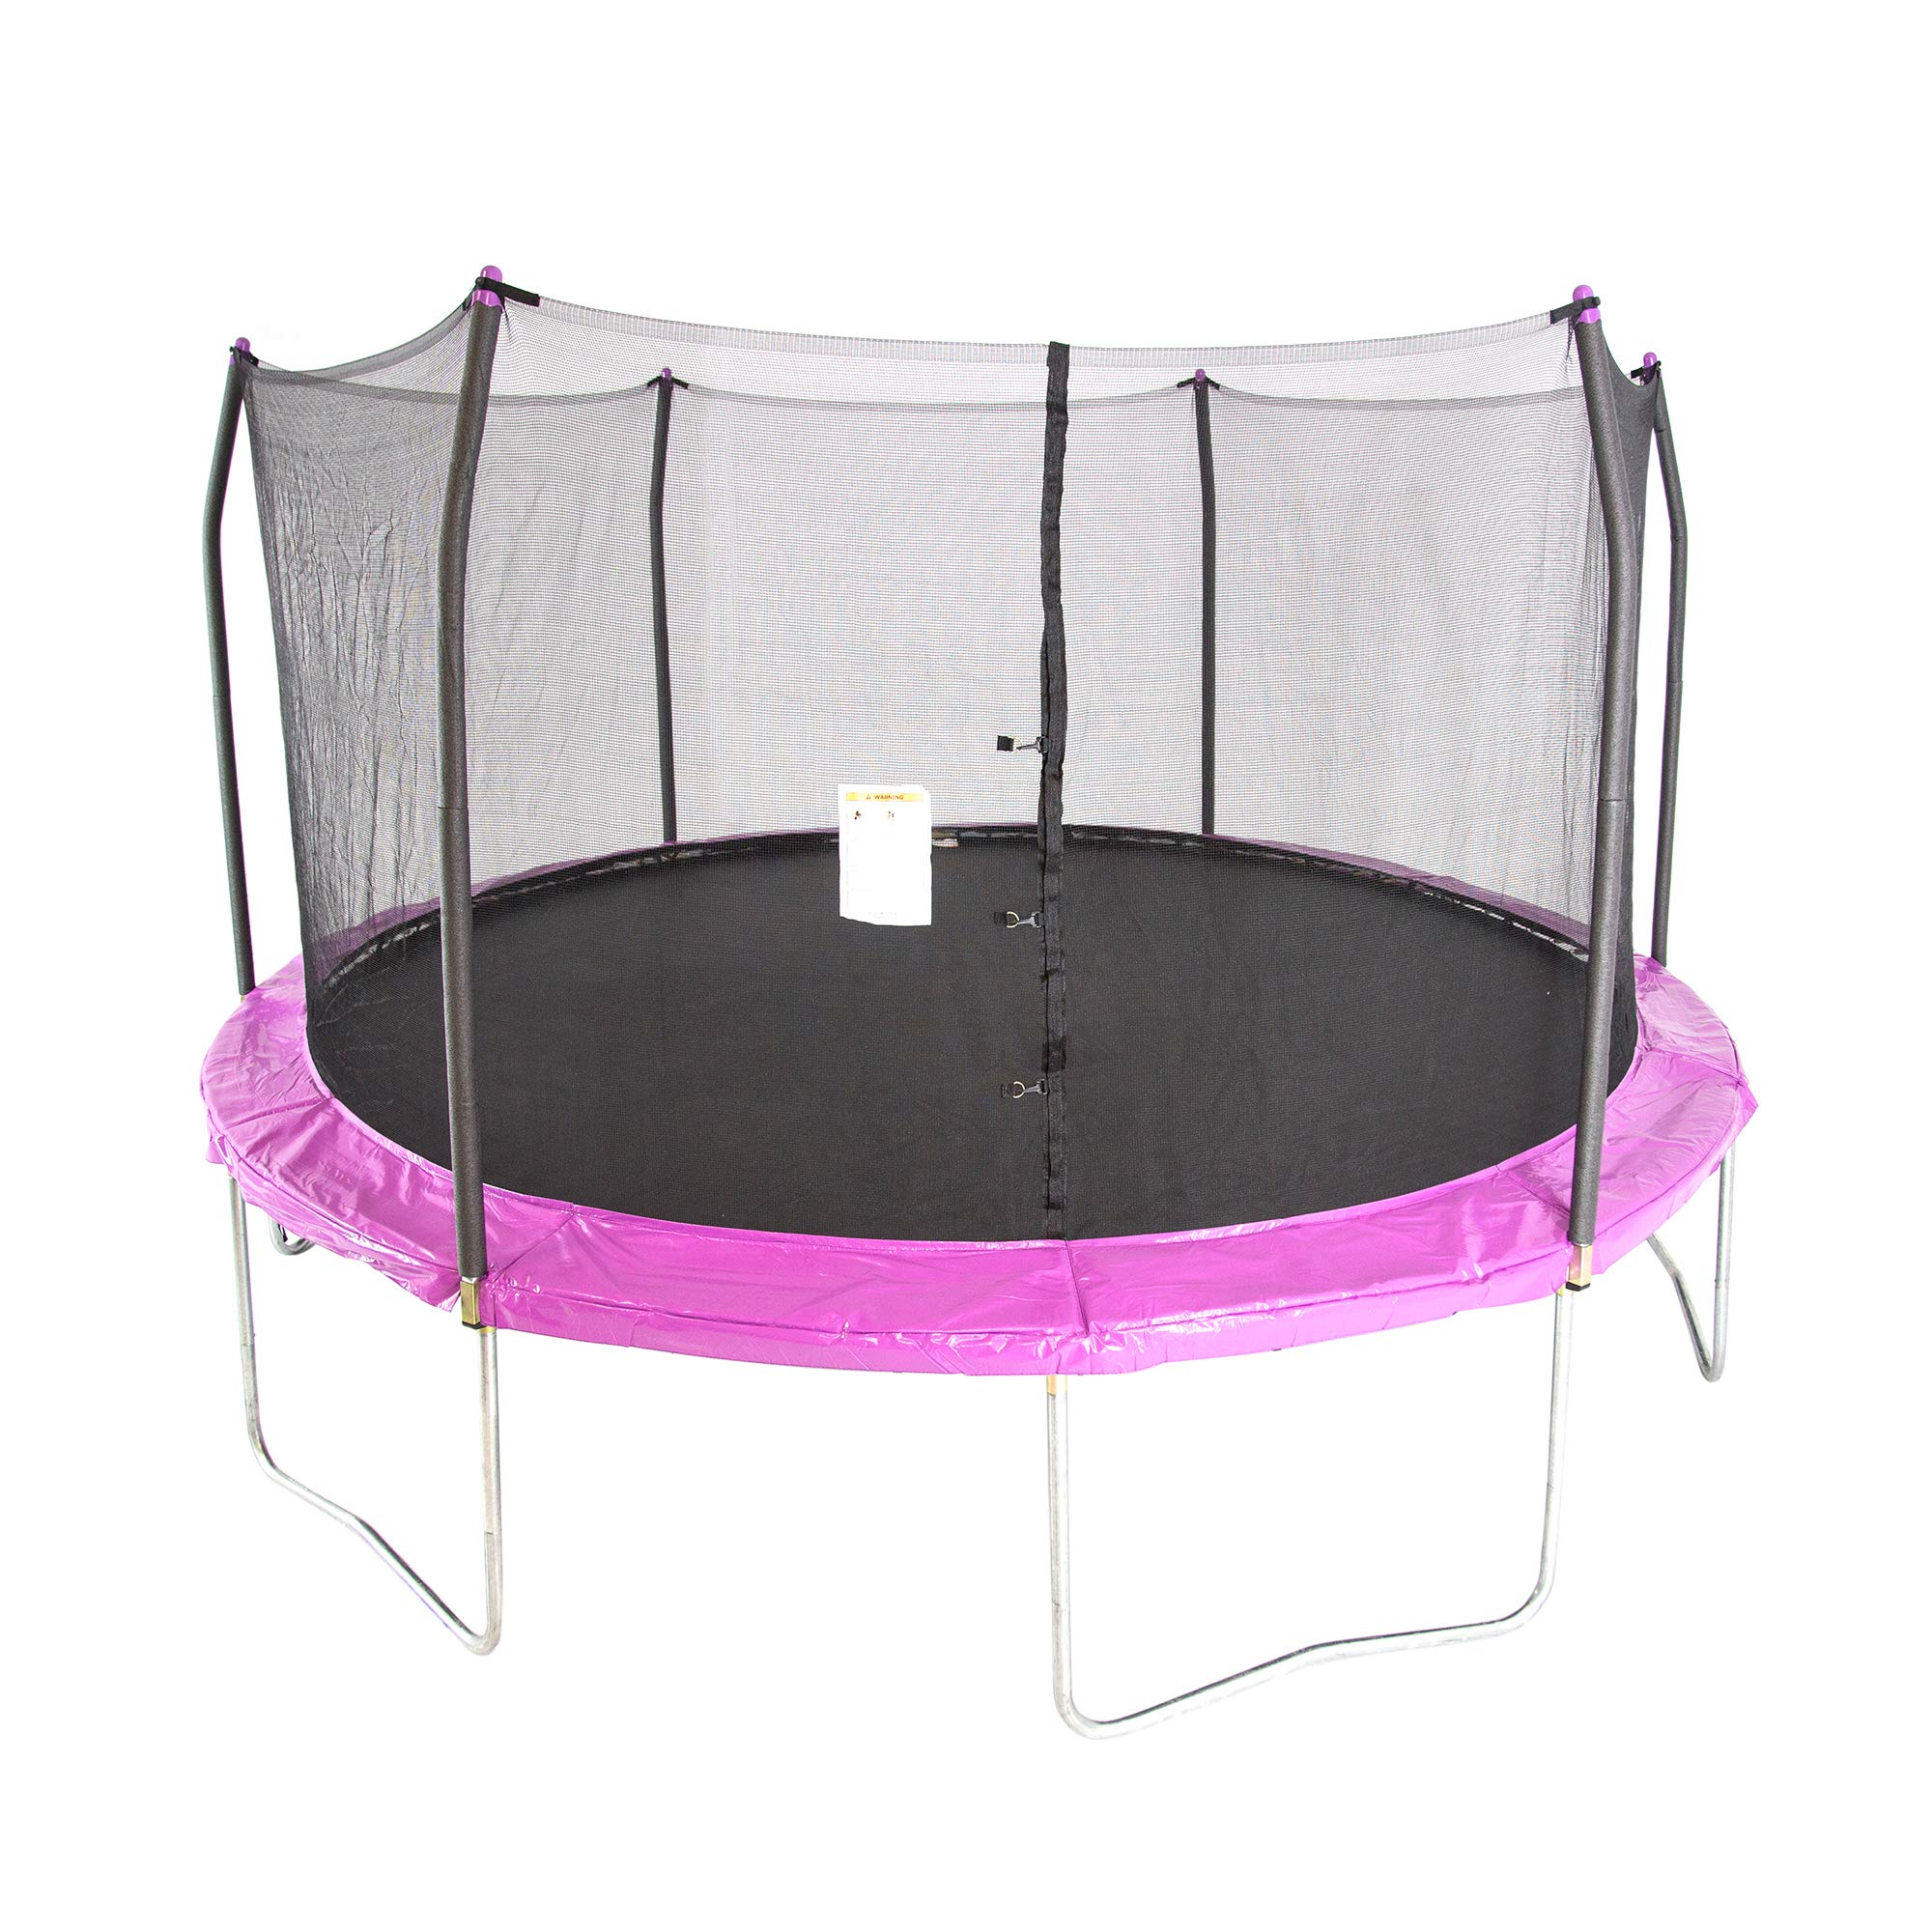 15' Trampoline with Enclosure by Skywalker Trampolines